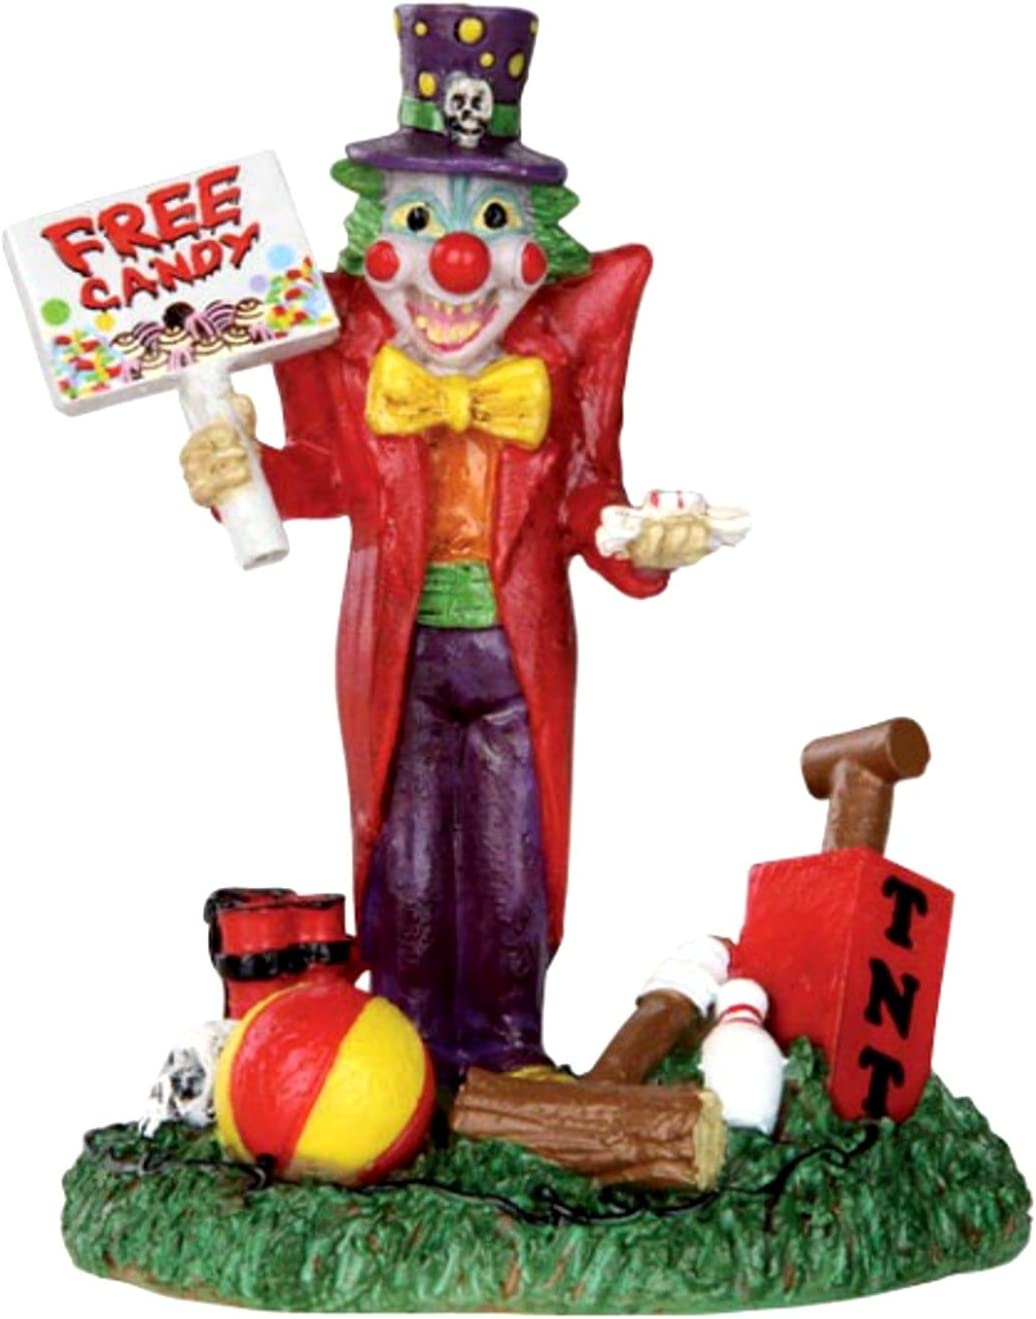 Lemax 32102 Free Candy Clown Spooky Town Figure Halloween Decor Figurine